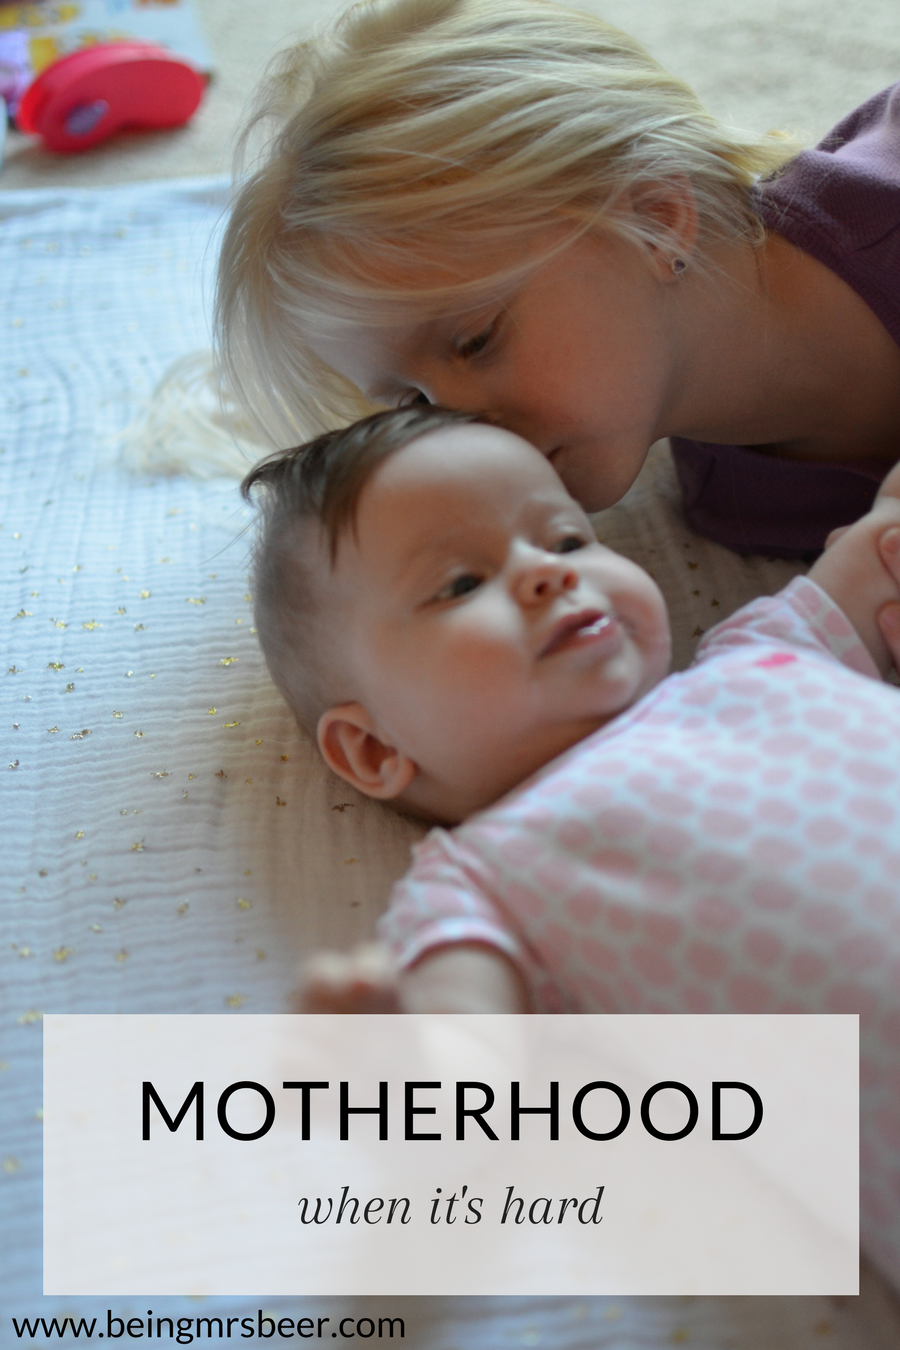 Sometimes motherhood is hard. Sometimes after having a baby, you lose yourself a little bit in the aftermath. It's not an easy transition, even when you've done it before...